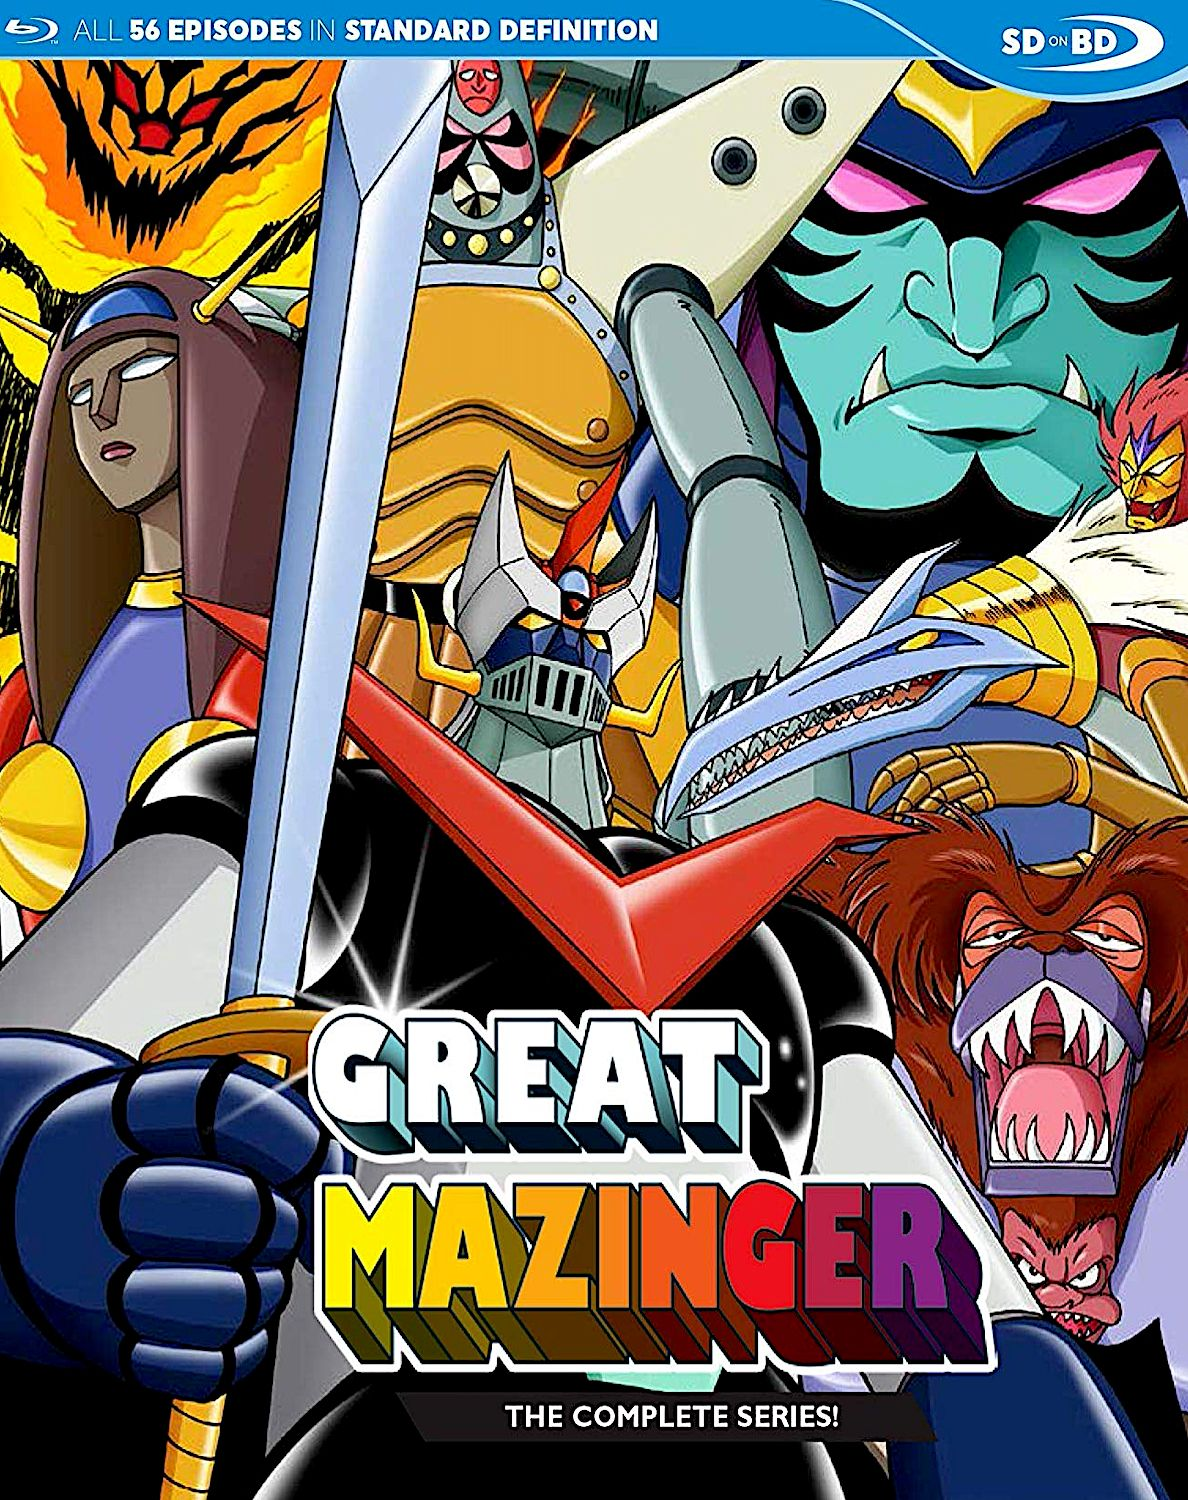 GREAT MAZINGER THE COMPLETE SERIES BLURAY SET (DISCOTEK